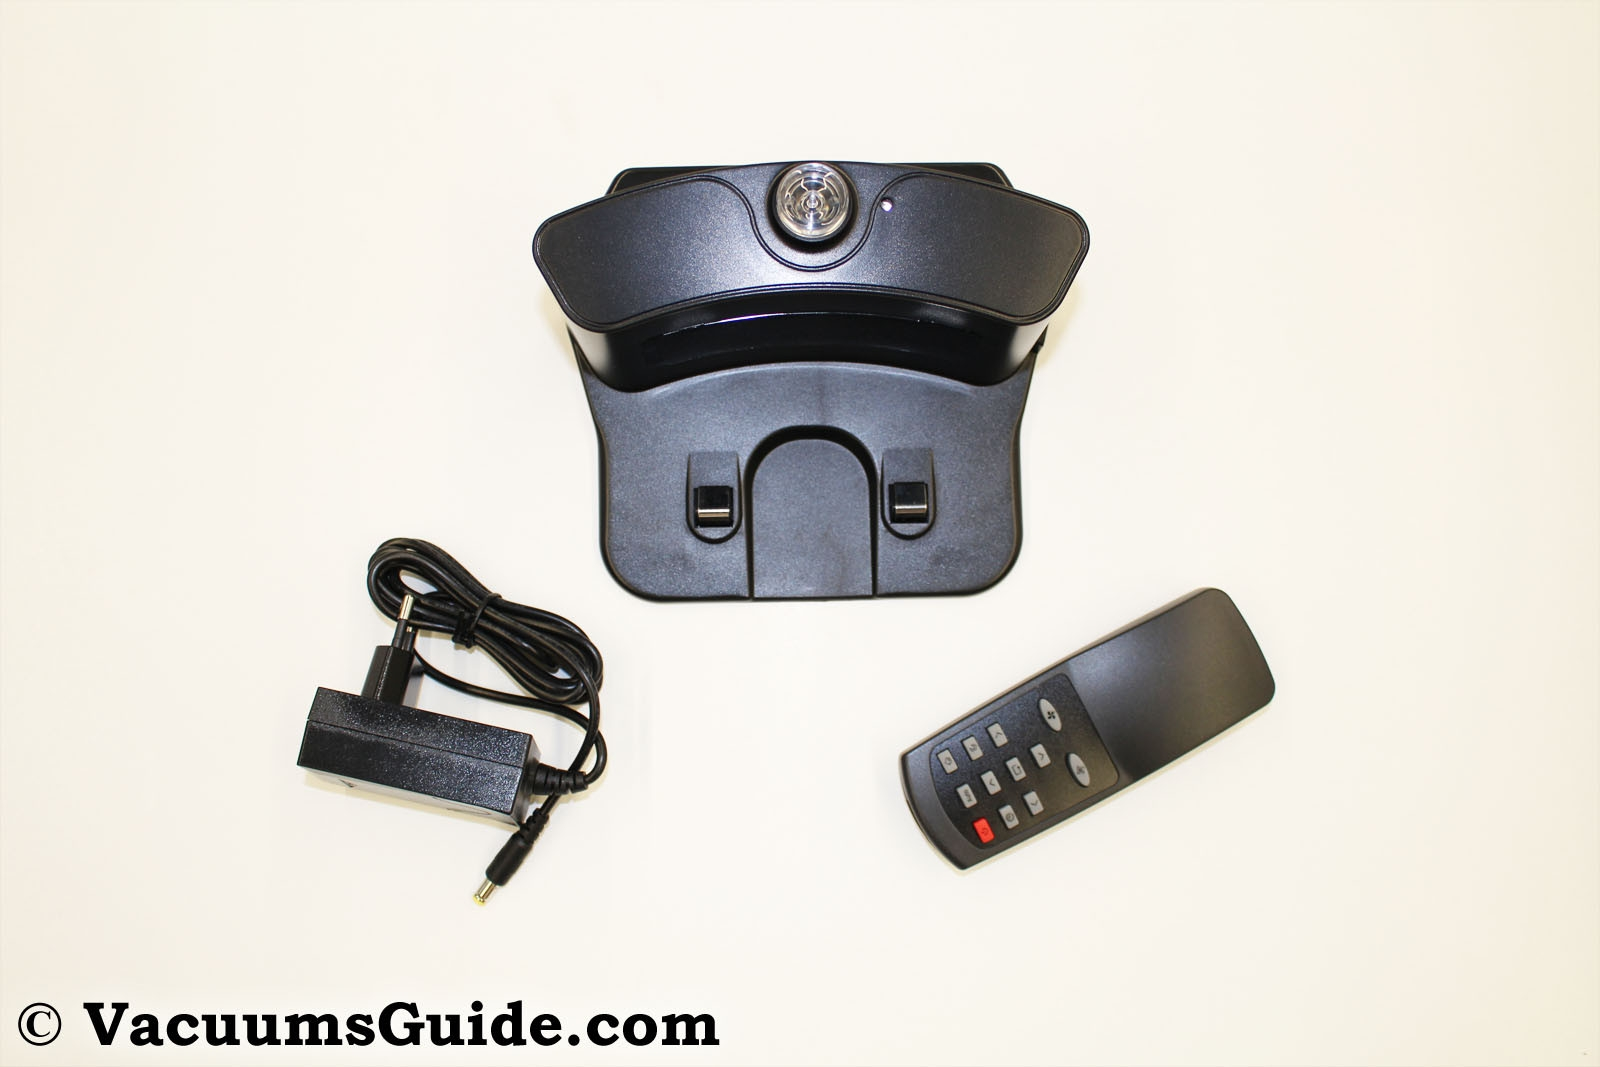 charging-bay-and-remote-control